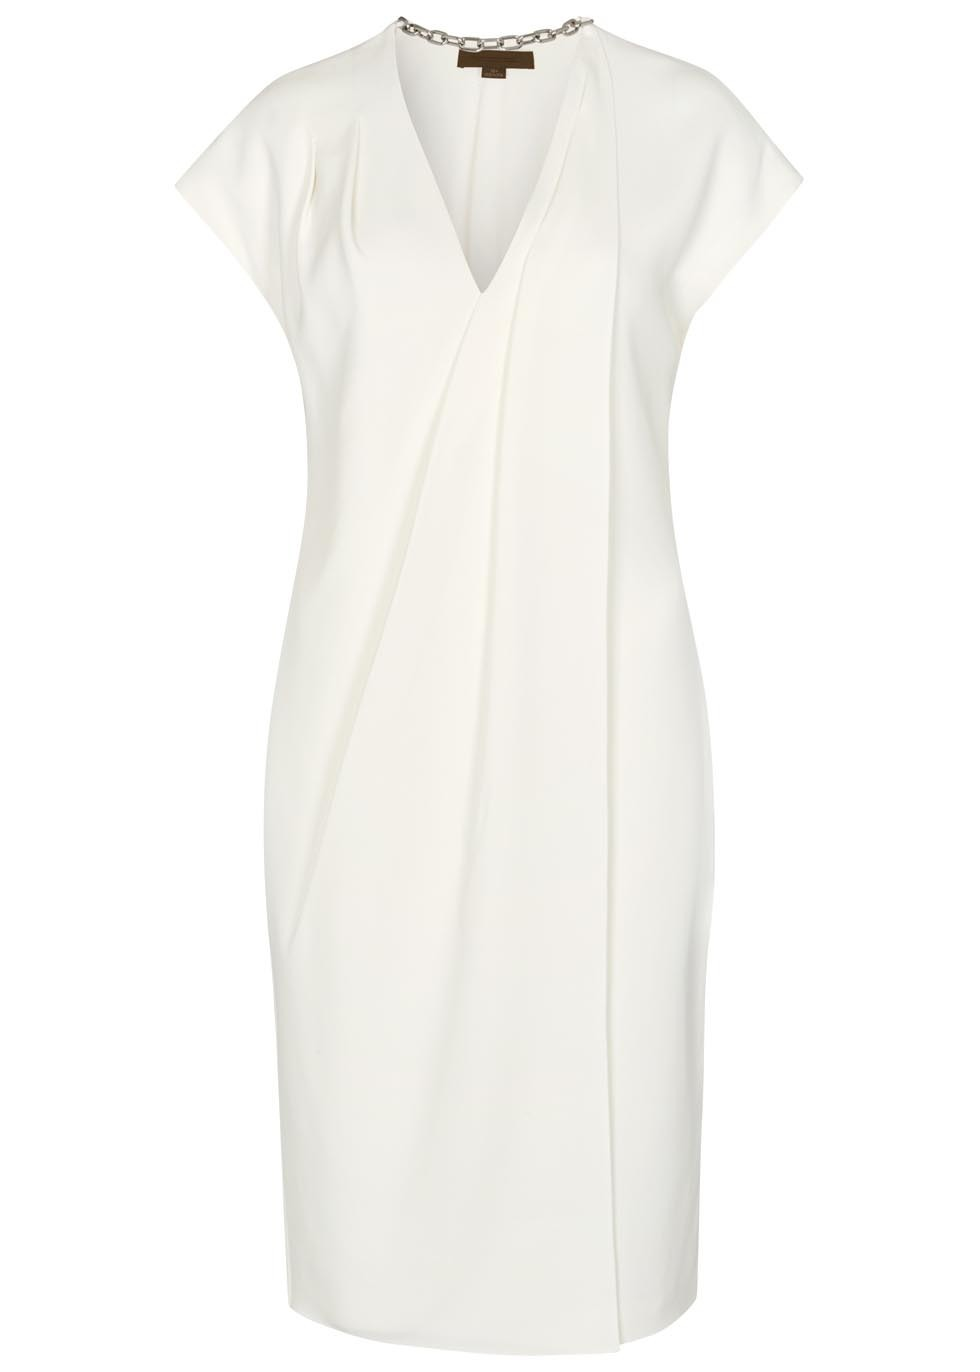 Off White Wrap Effect Dress - style: faux wrap/wrap; neckline: v-neck; sleeve style: capped; pattern: plain; predominant colour: white; occasions: evening; length: on the knee; fit: body skimming; fibres: viscose/rayon - stretch; sleeve length: short sleeve; pattern type: fabric; texture group: other - light to midweight; season: s/s 2016; wardrobe: event